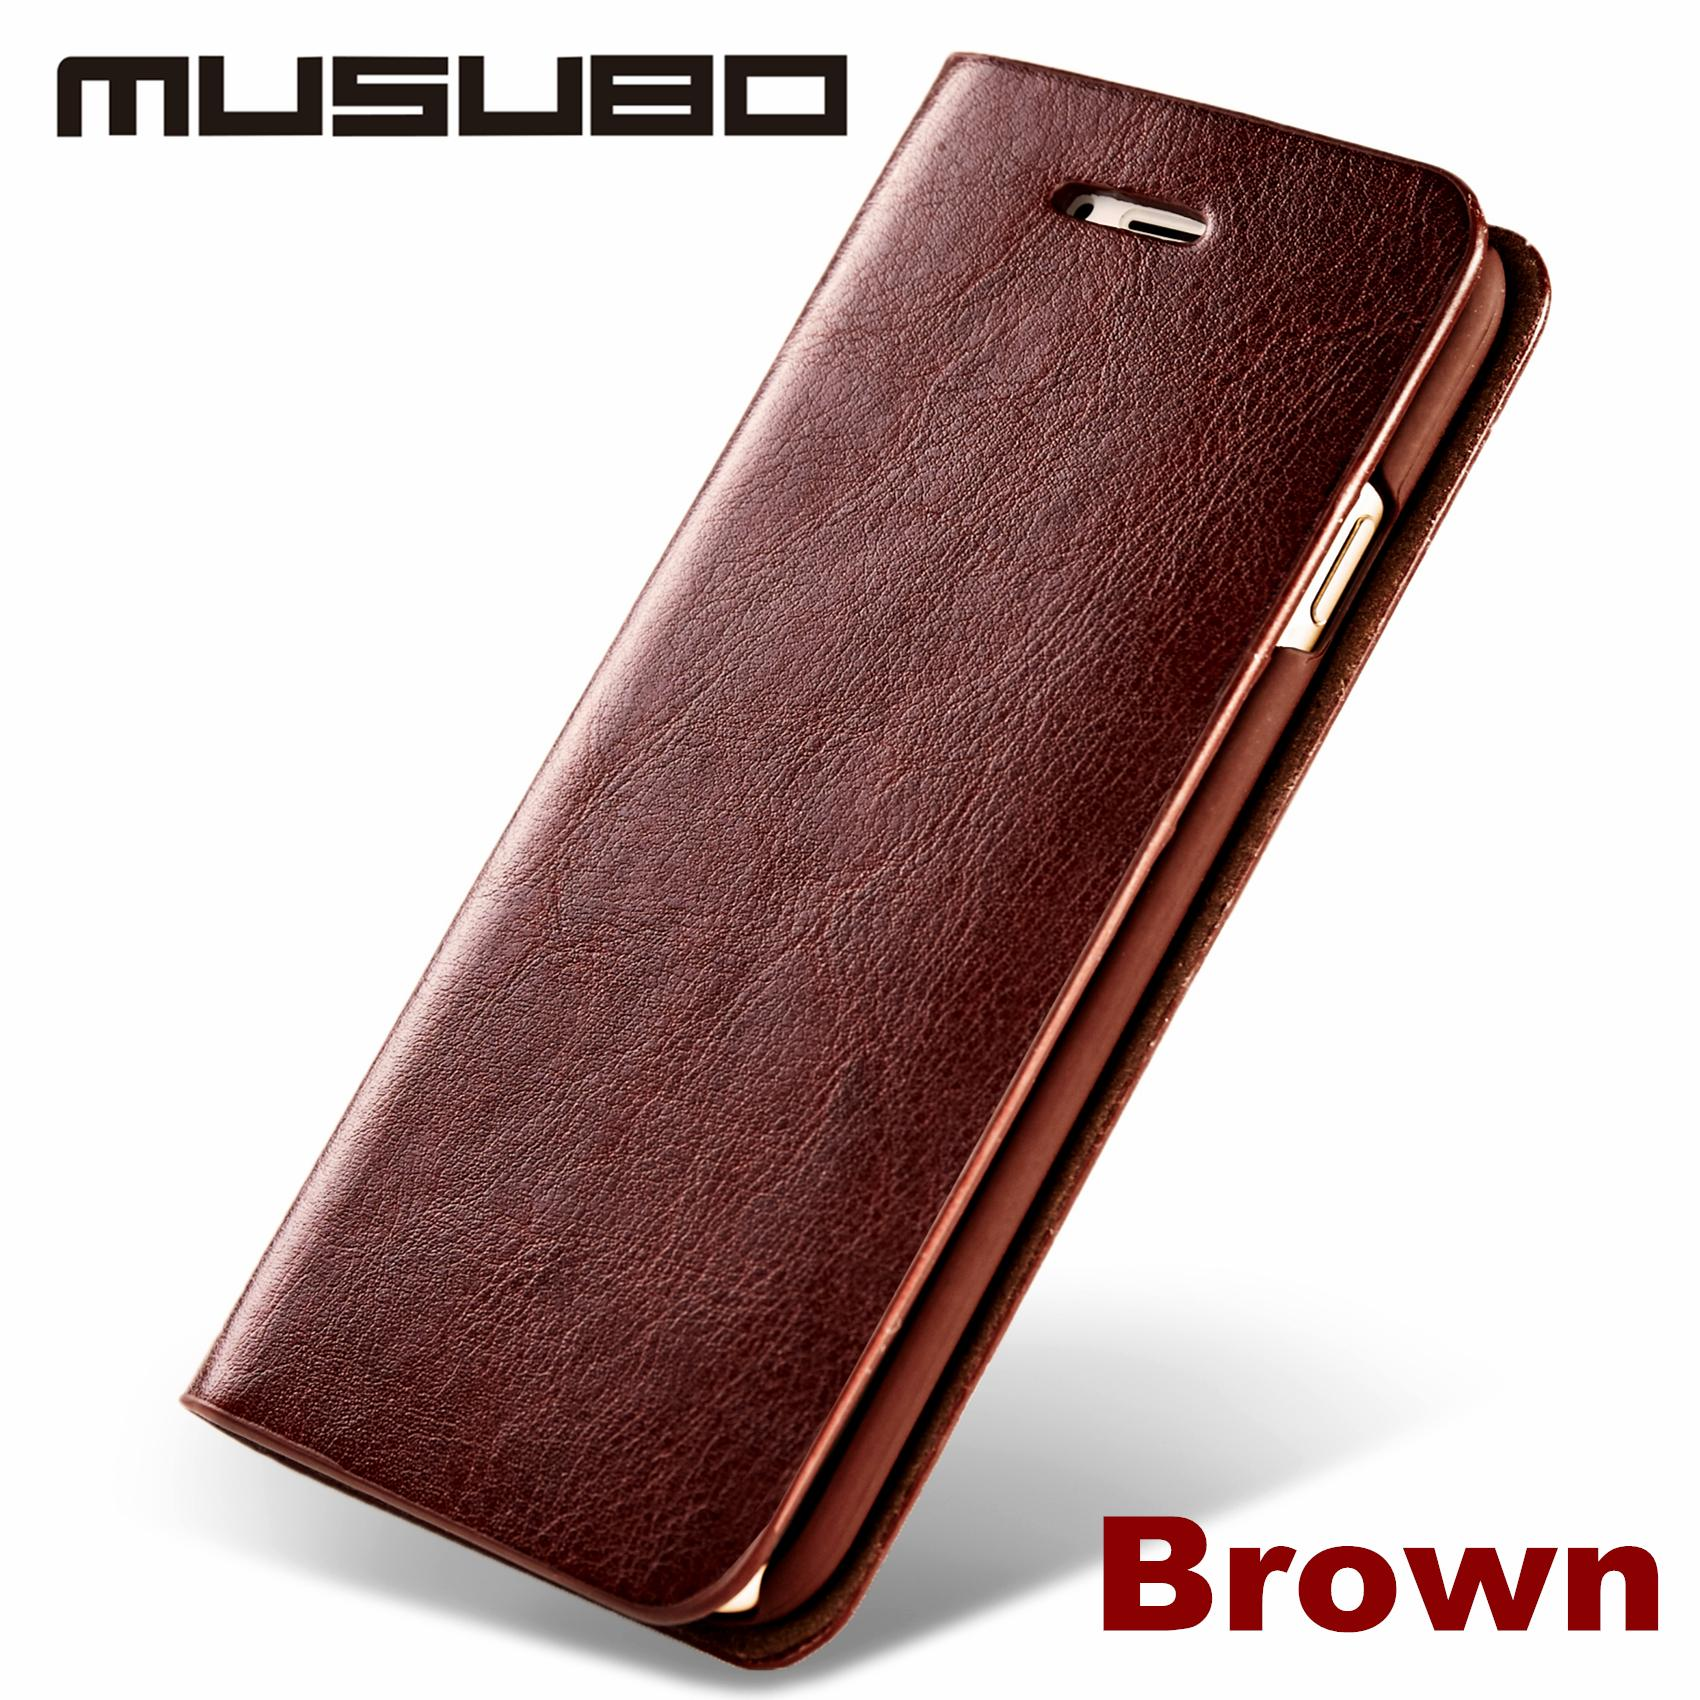 New Genuine Real Leather Case For Apple 7 Plus Iphone 6s Plus Luxury Phone Cases Iphone 6 Cover Iphone 5 5s Se 4 With Card Slot Flip Holster Cell Phone